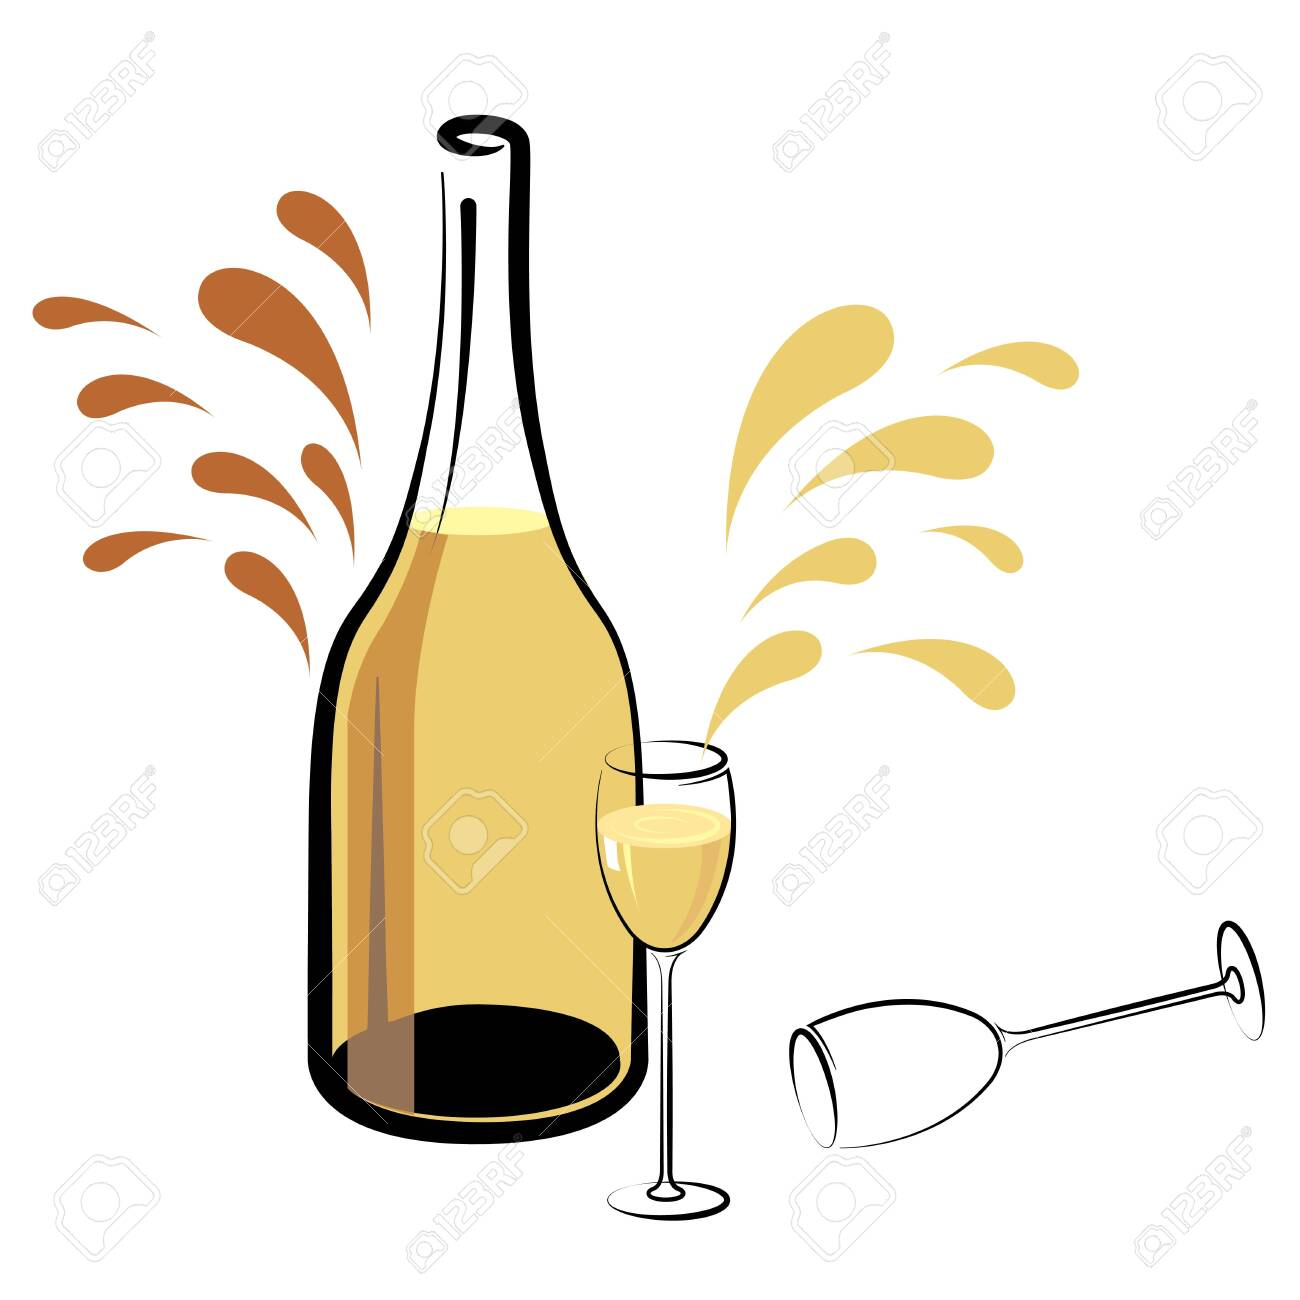 champagne isolated on white background. - 131437407